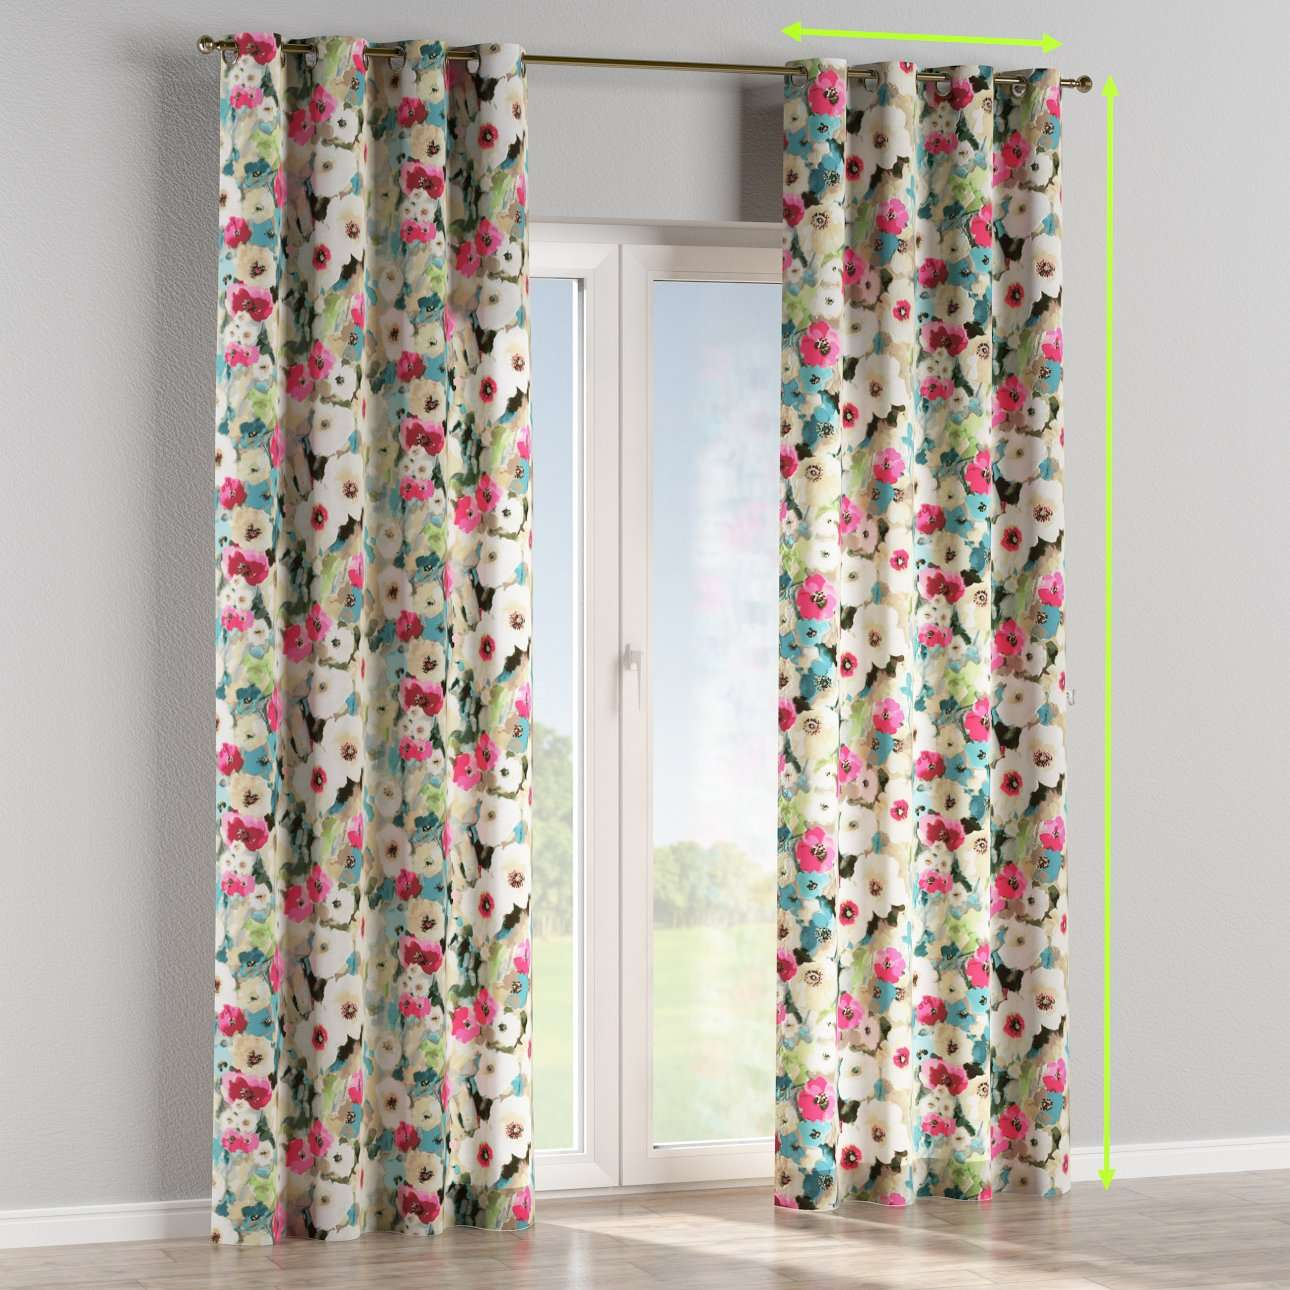 Eyelet curtains in collection Monet, fabric: 140-08